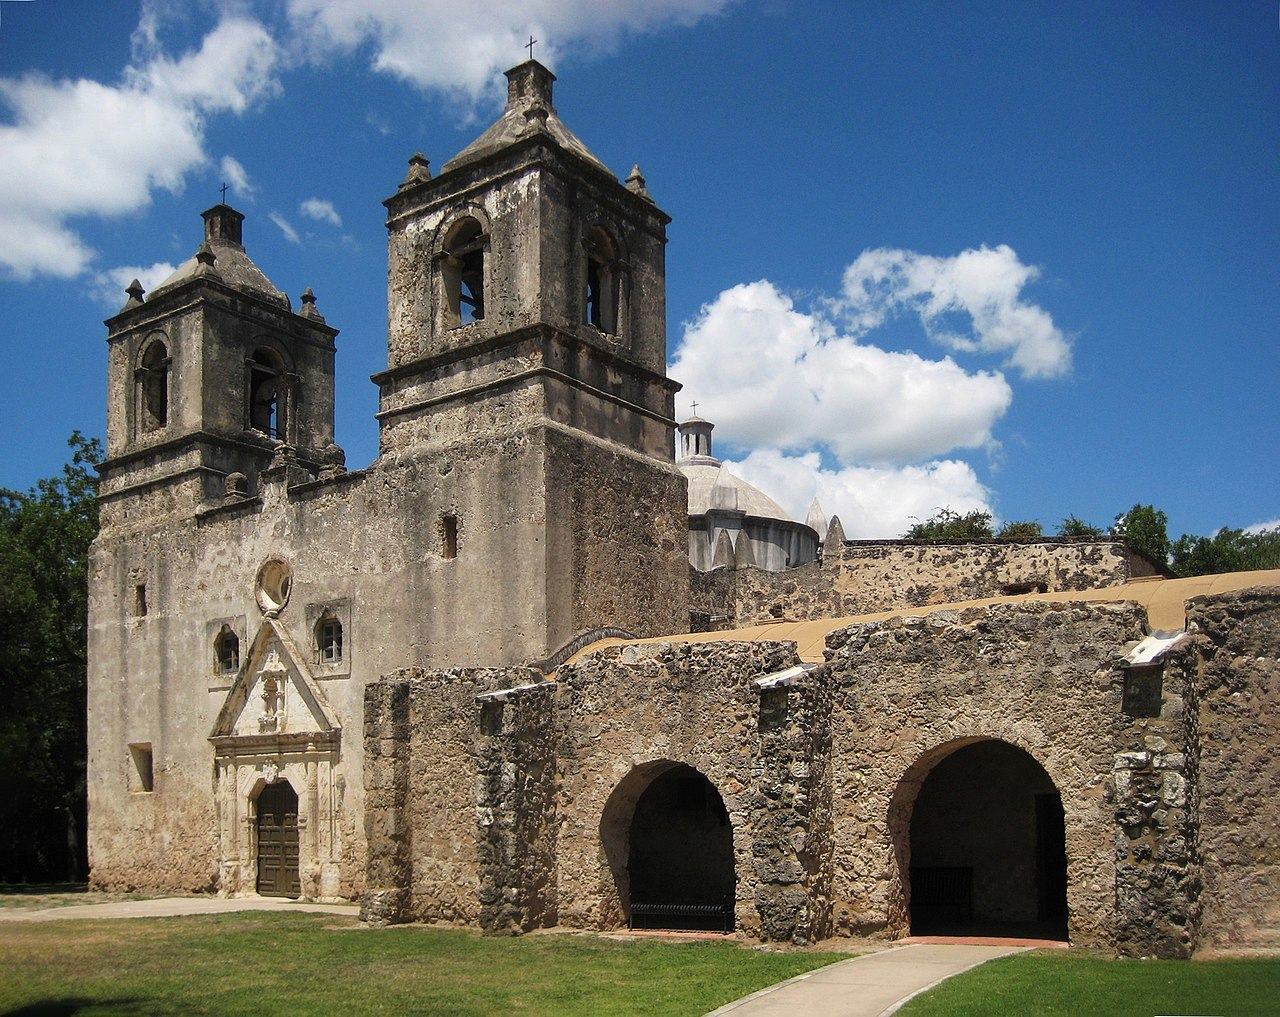 Top National Parks In Texas-San Antonio Missions Historic National Park